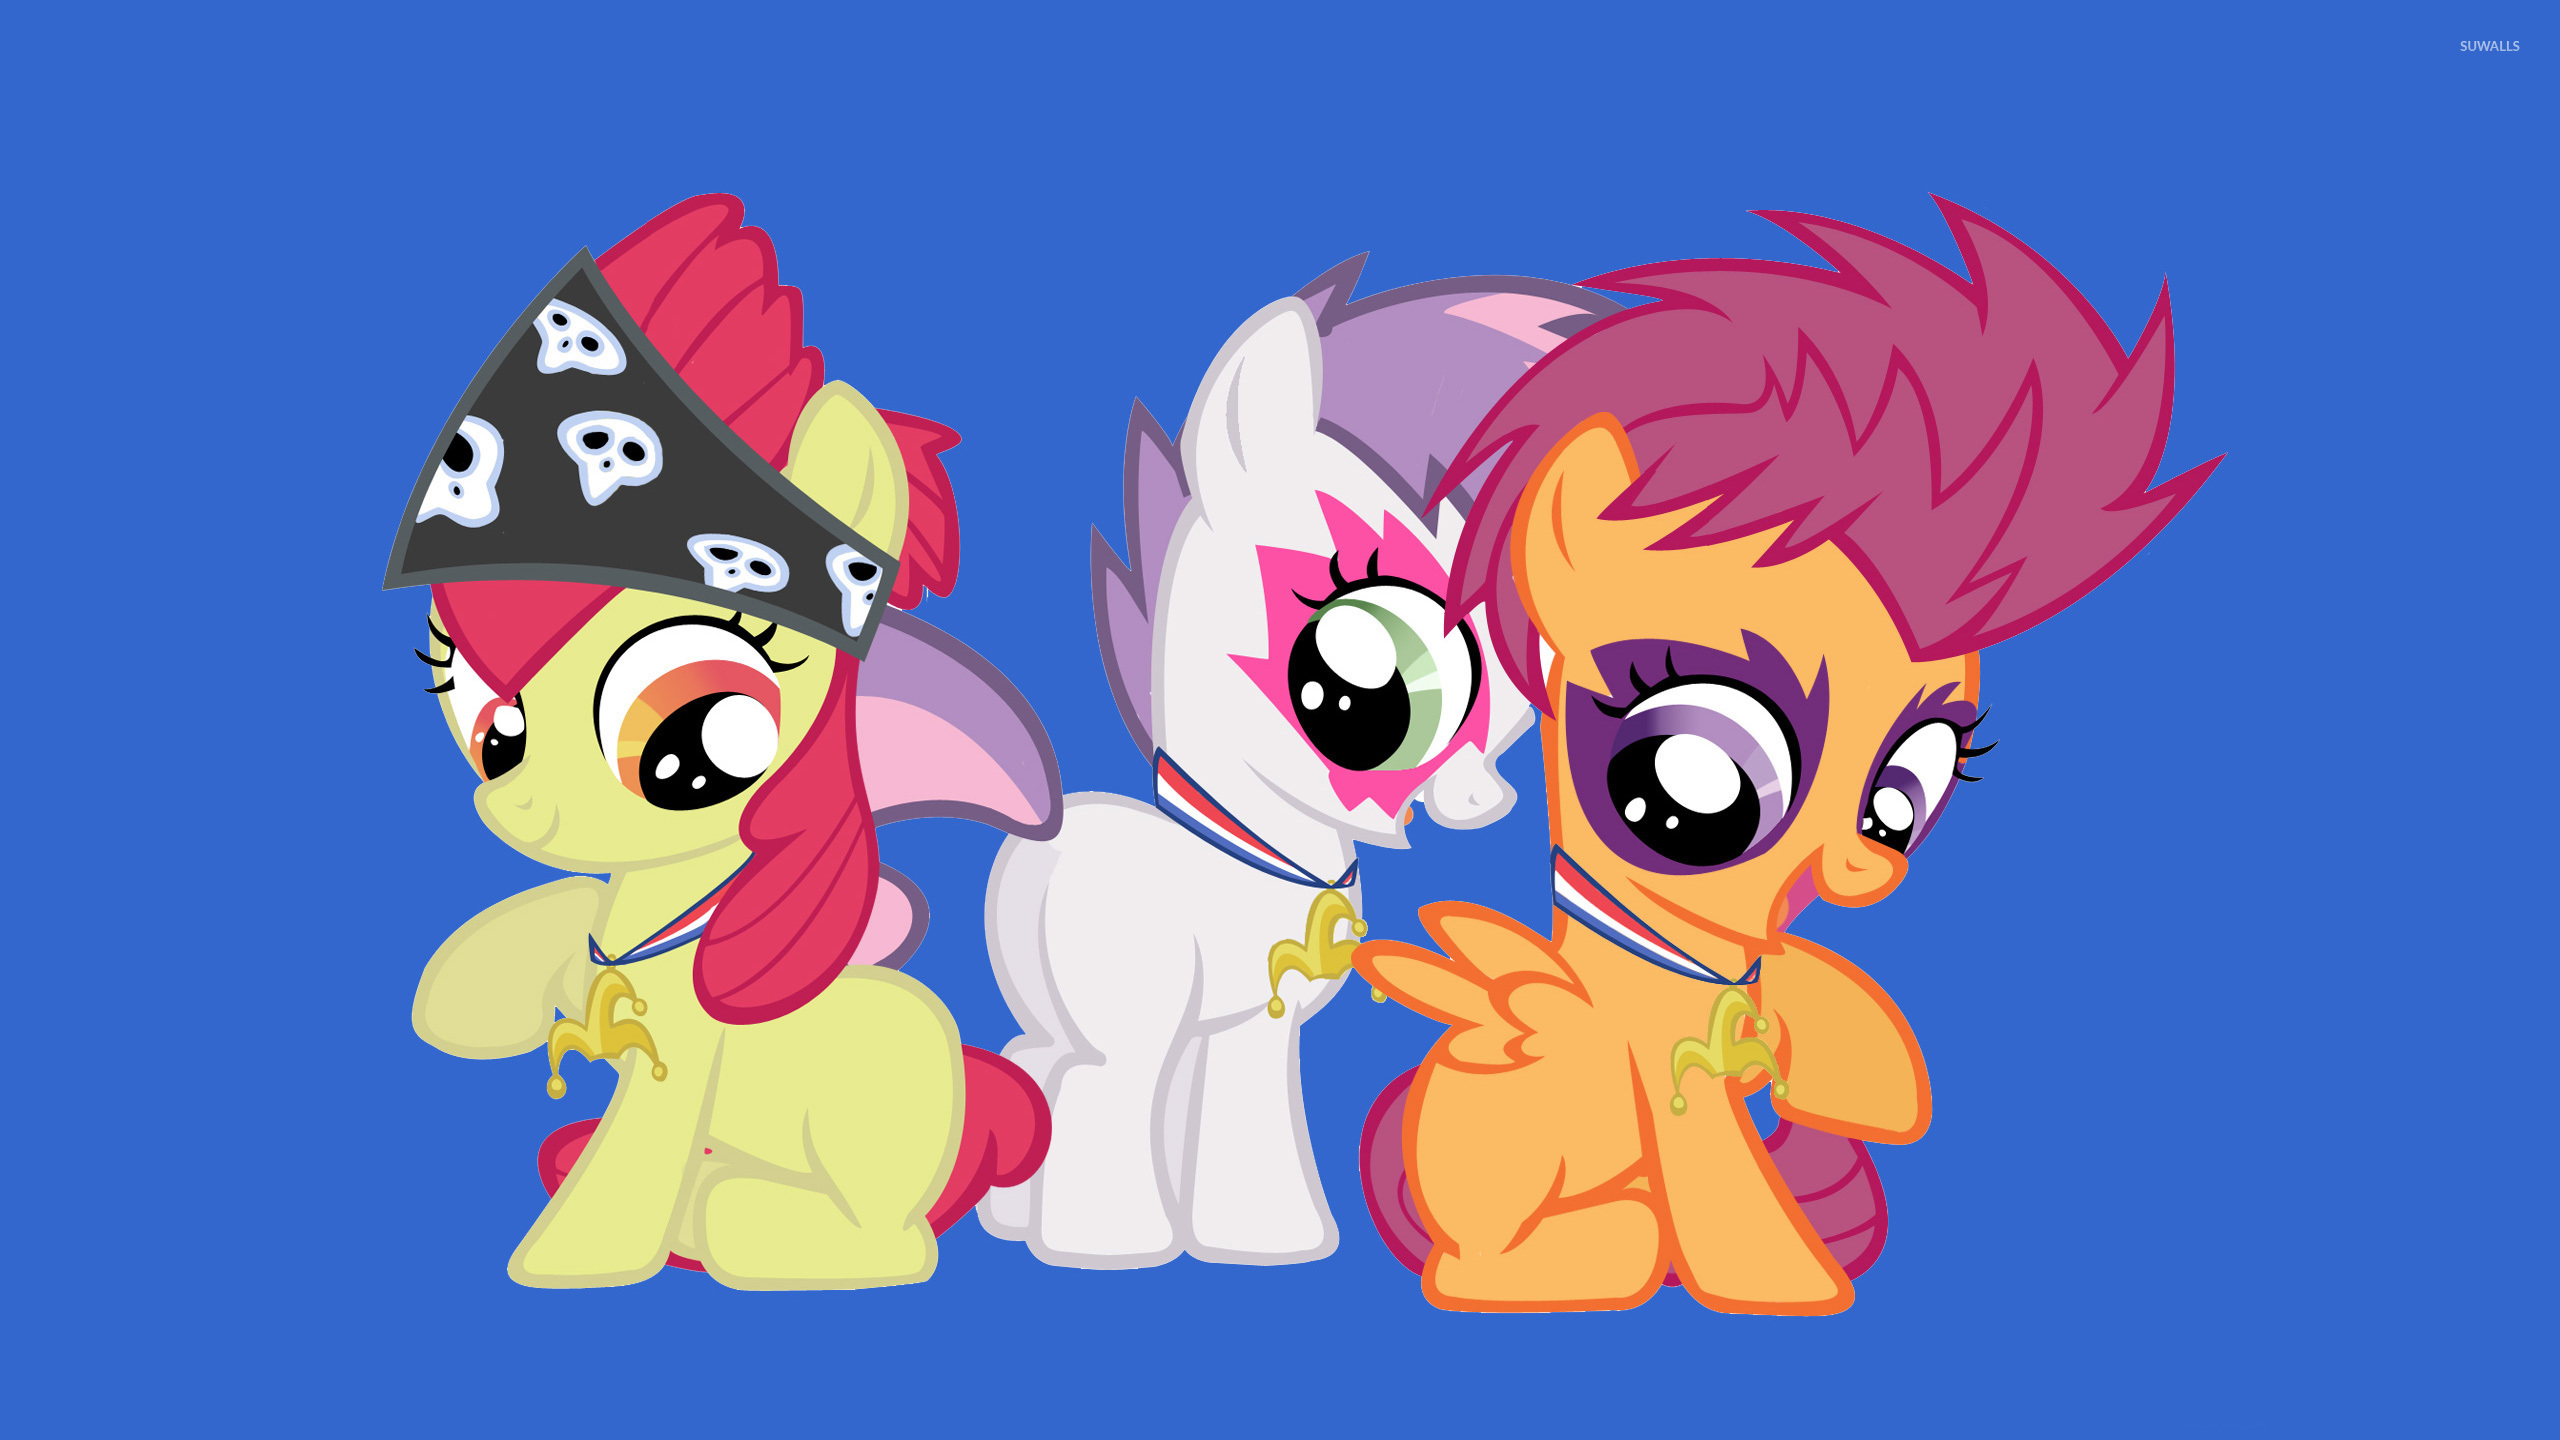 Applebloom Sweetie Belle And Scootaloo Wallpaper Cartoon Wallpapers 7227 See more scootaloo wallpaper, scootaloo background, mlp scootaloo wallpaper, rainbow dash scootaloo looking for the best scootaloo wallpaper? applebloom sweetie belle and scootaloo